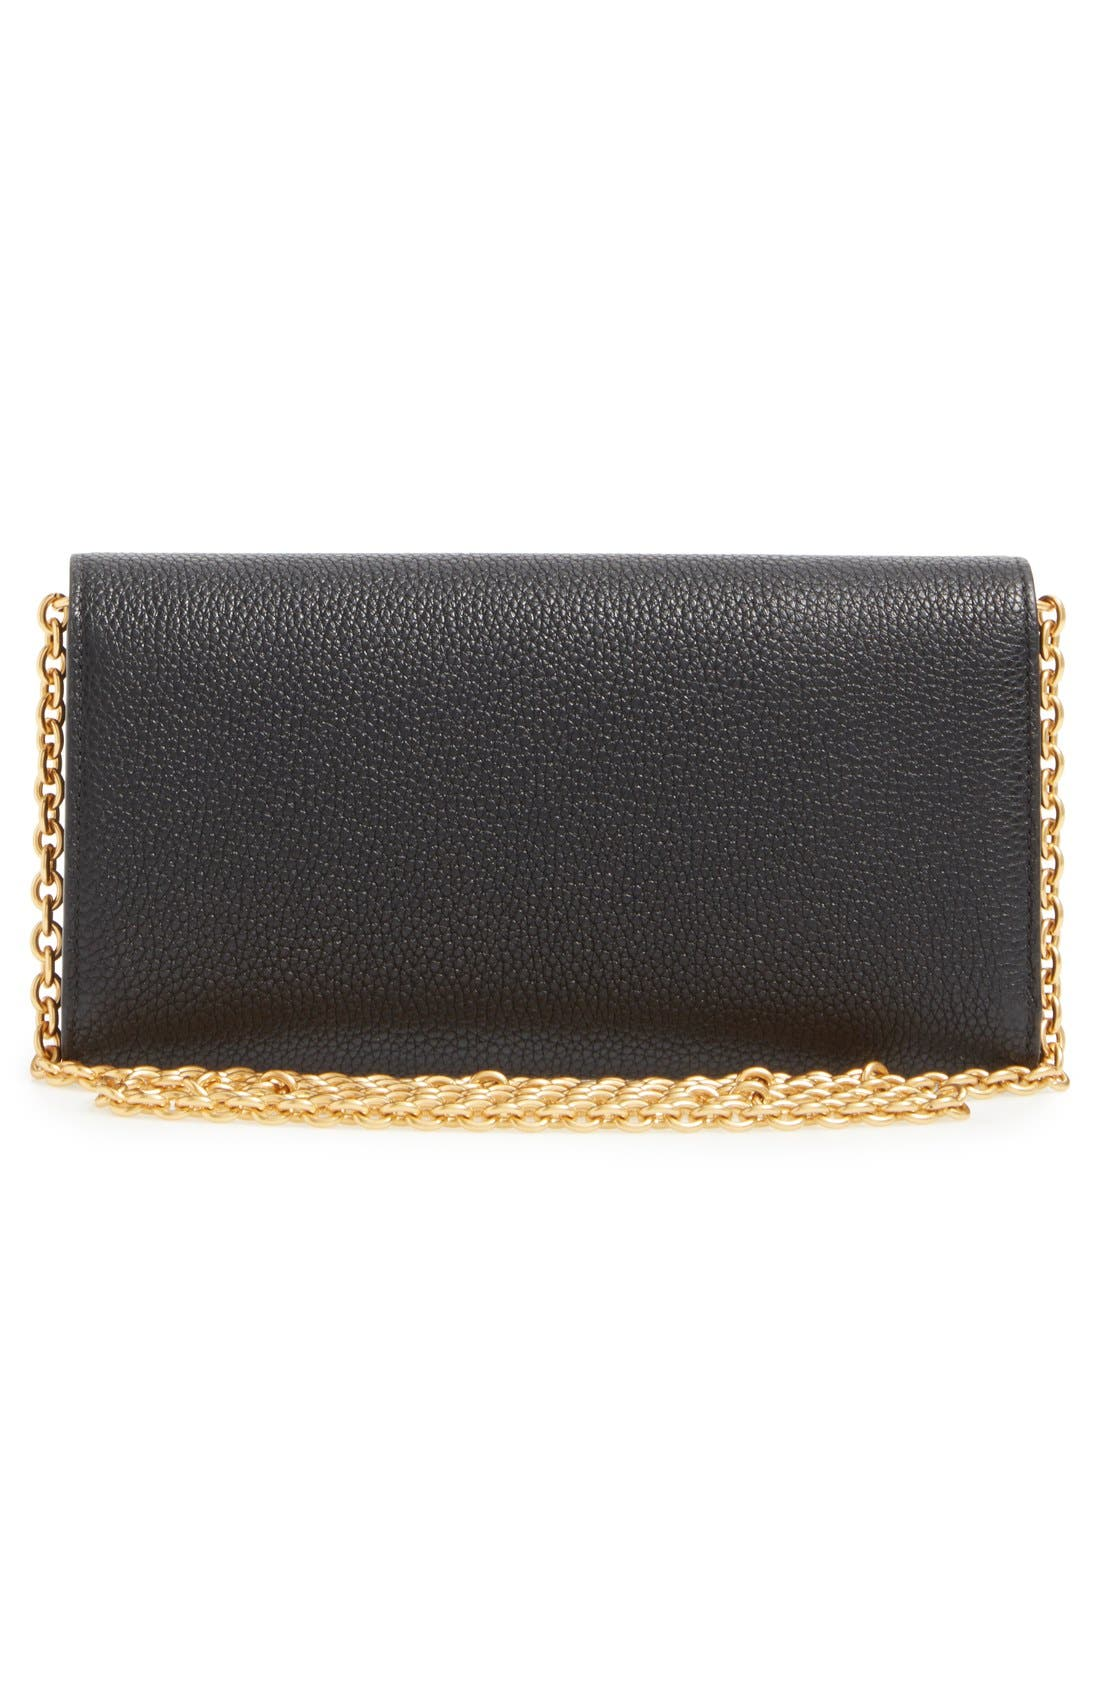 Alternate Image 3  - Mulberry 'Continental - Classic' Convertible Leather Clutch